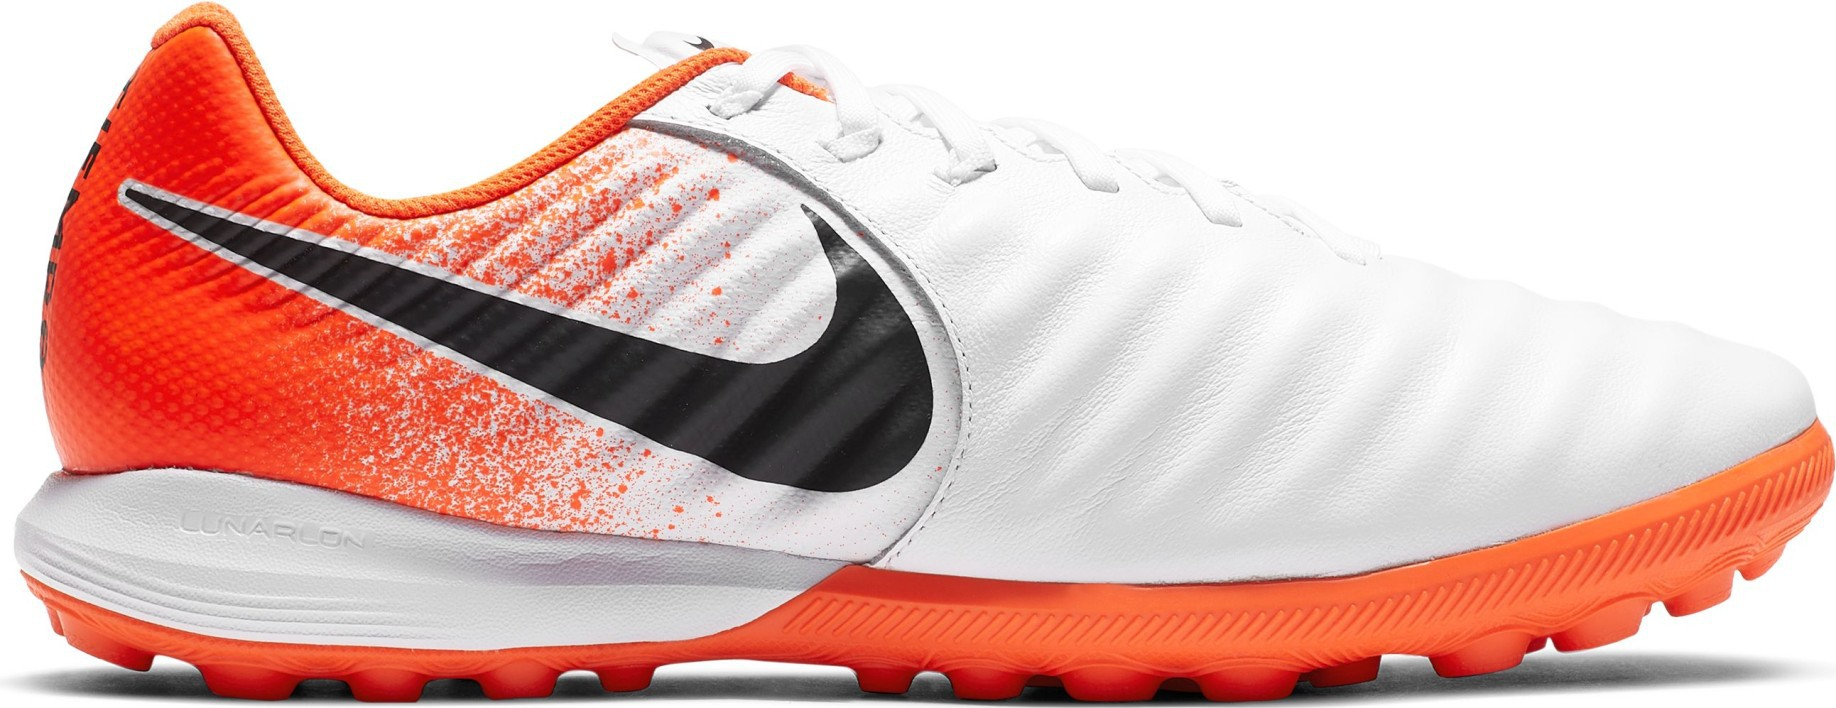 official photos 41f05 4632e Shoes Soccer Nike Tiempo Lunar LegendX Pro TF Euphoria Pack